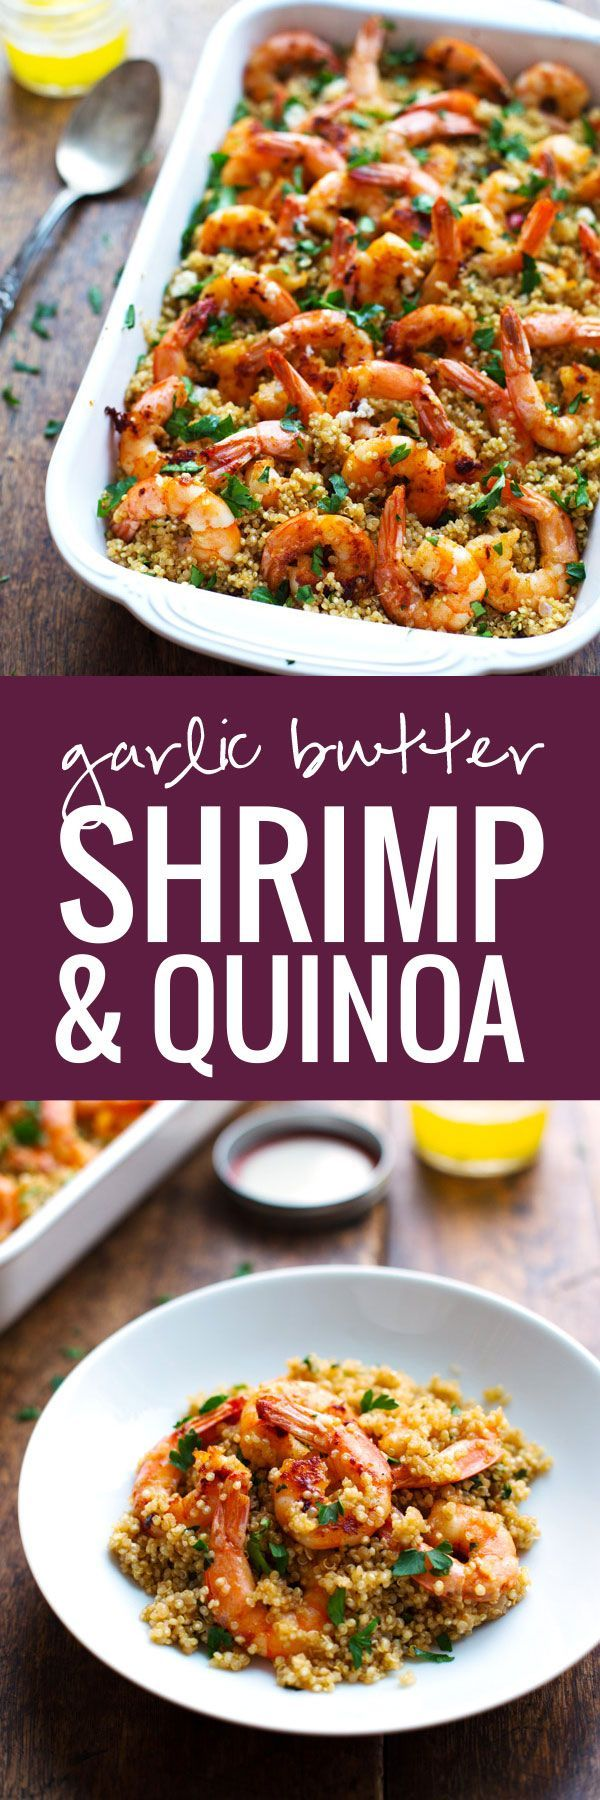 Garlic Butter Shrimp and Quinoa - A simple 30 minute dinner that is elegant and full of flavor.